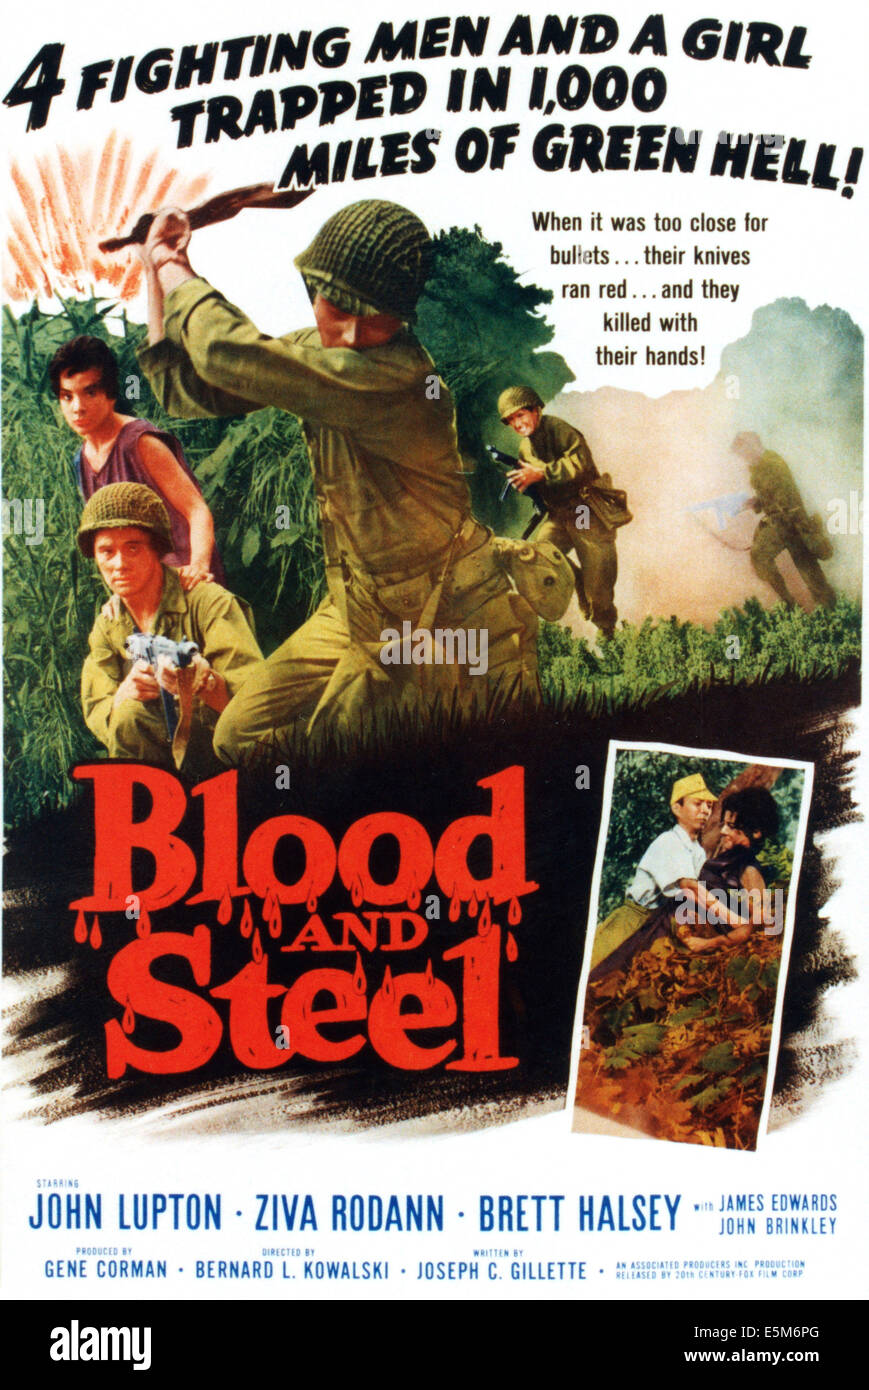 BLOOD AND STEEL, 1959 - Stock Image